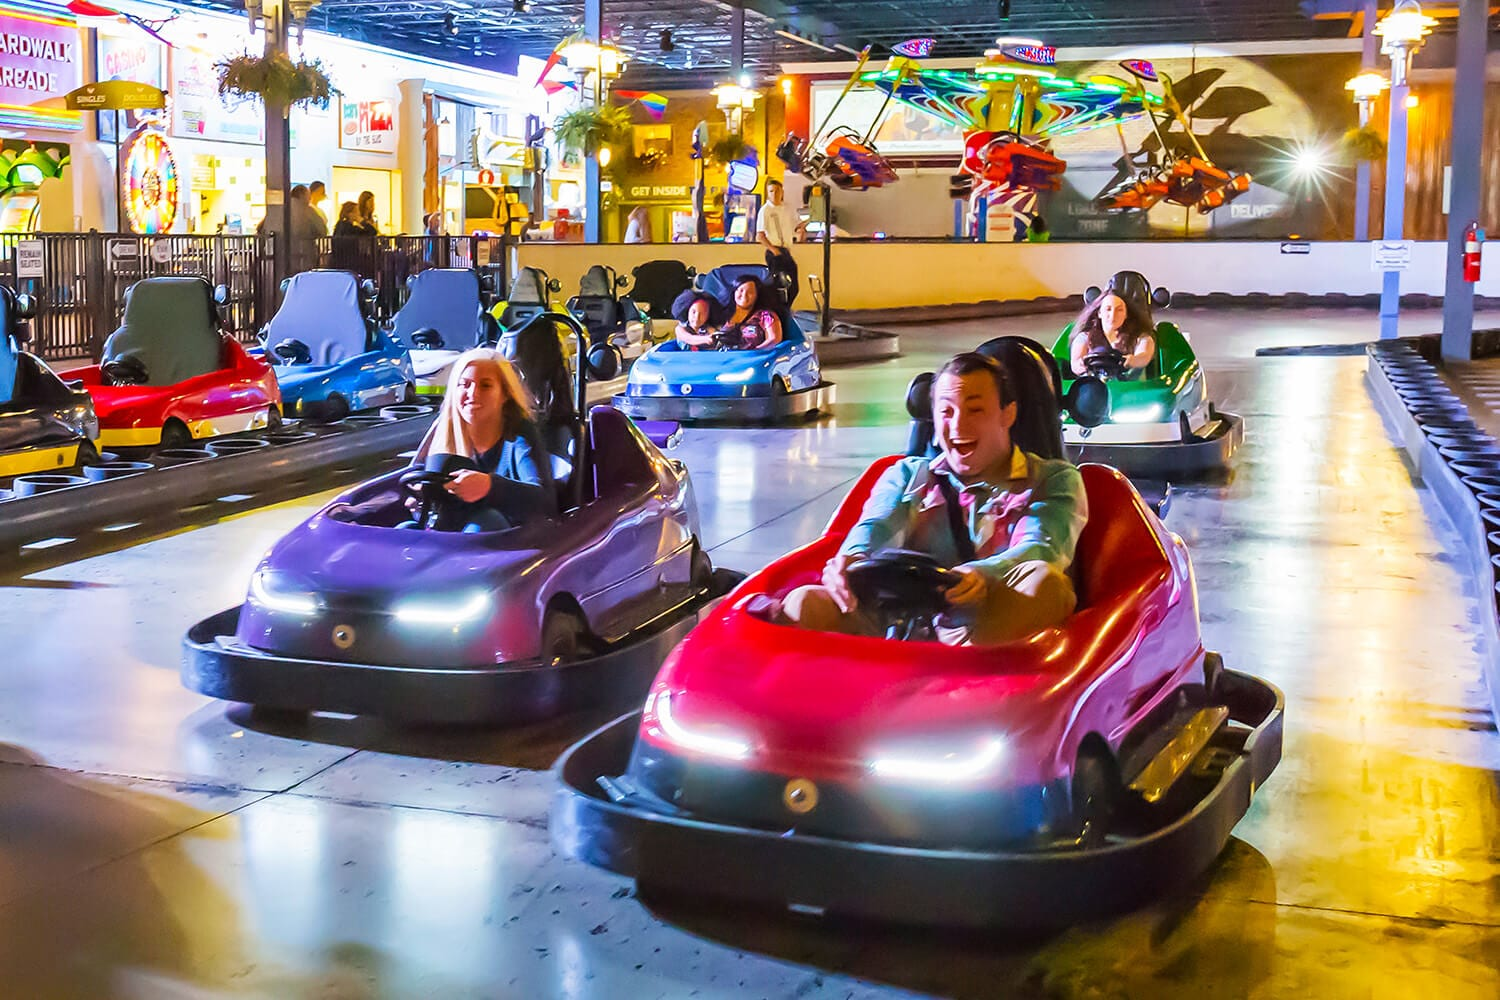 NJ's biggest indoor amusement park is perfect for a rainy day in Monmouth County!